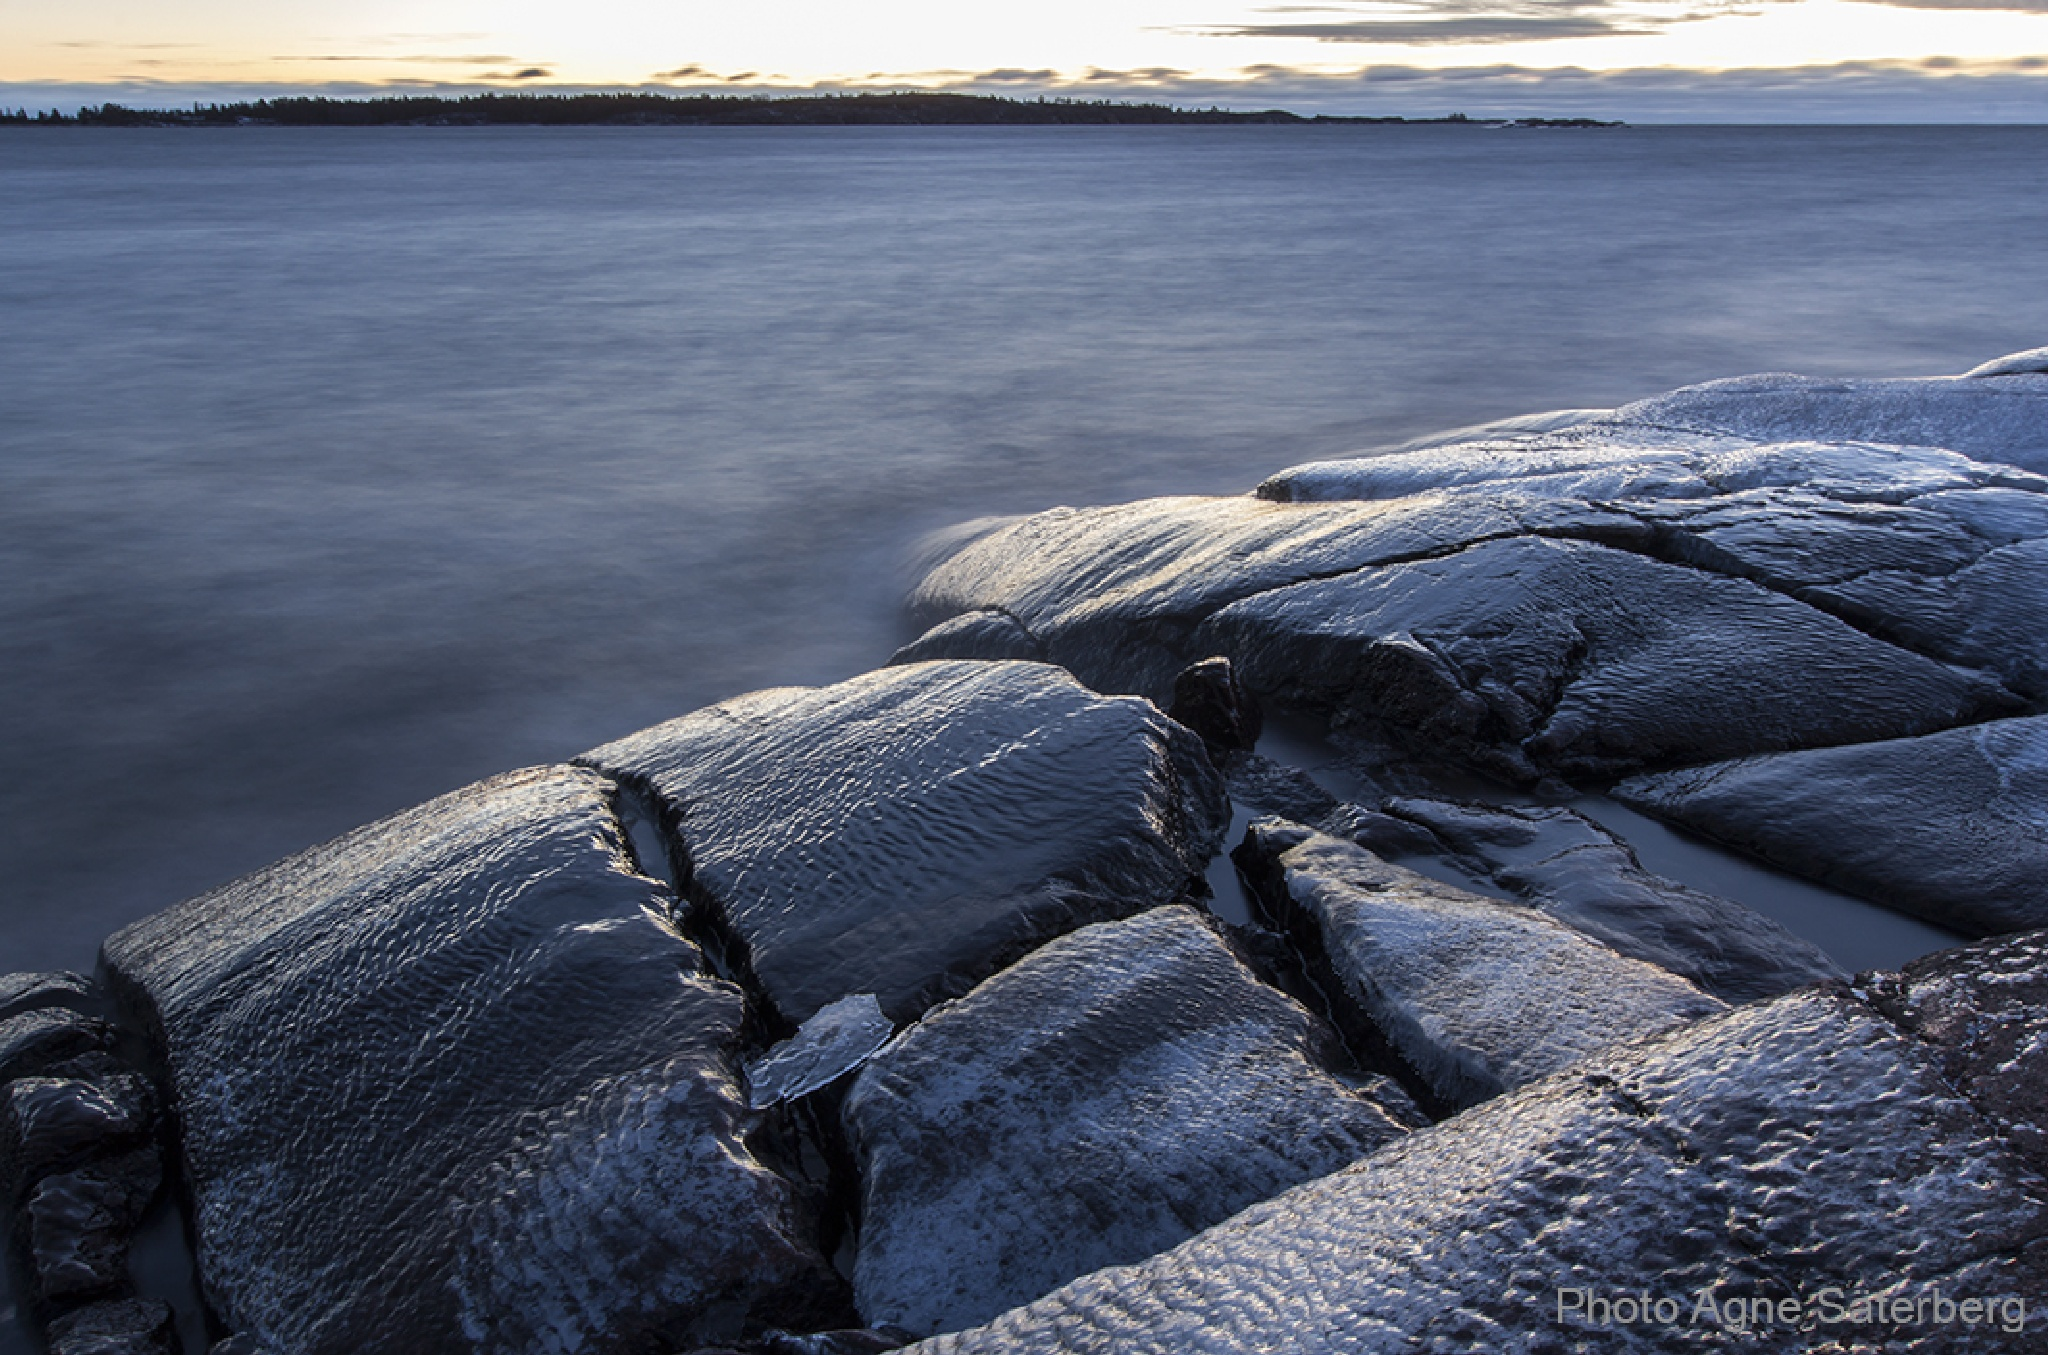 Ice on the rocks at the coast by Agne Säterberg